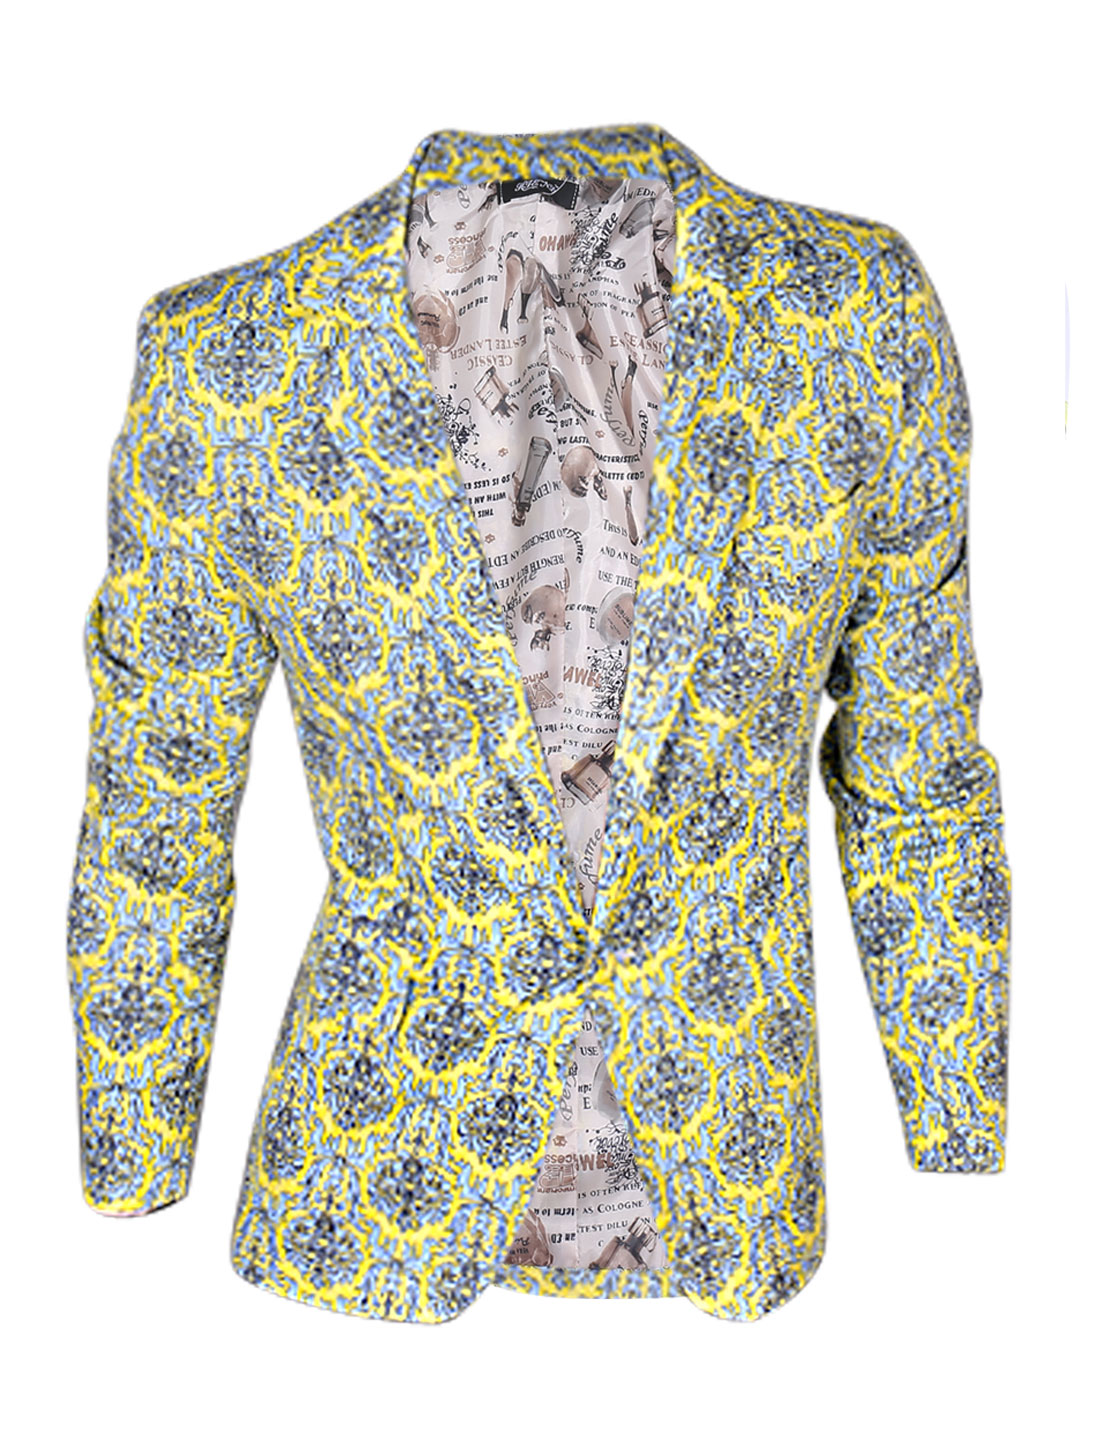 Man Yellow Baby Blue Front Pockets Jacquard Pattern Padded Shoulder Blazer Jacket M